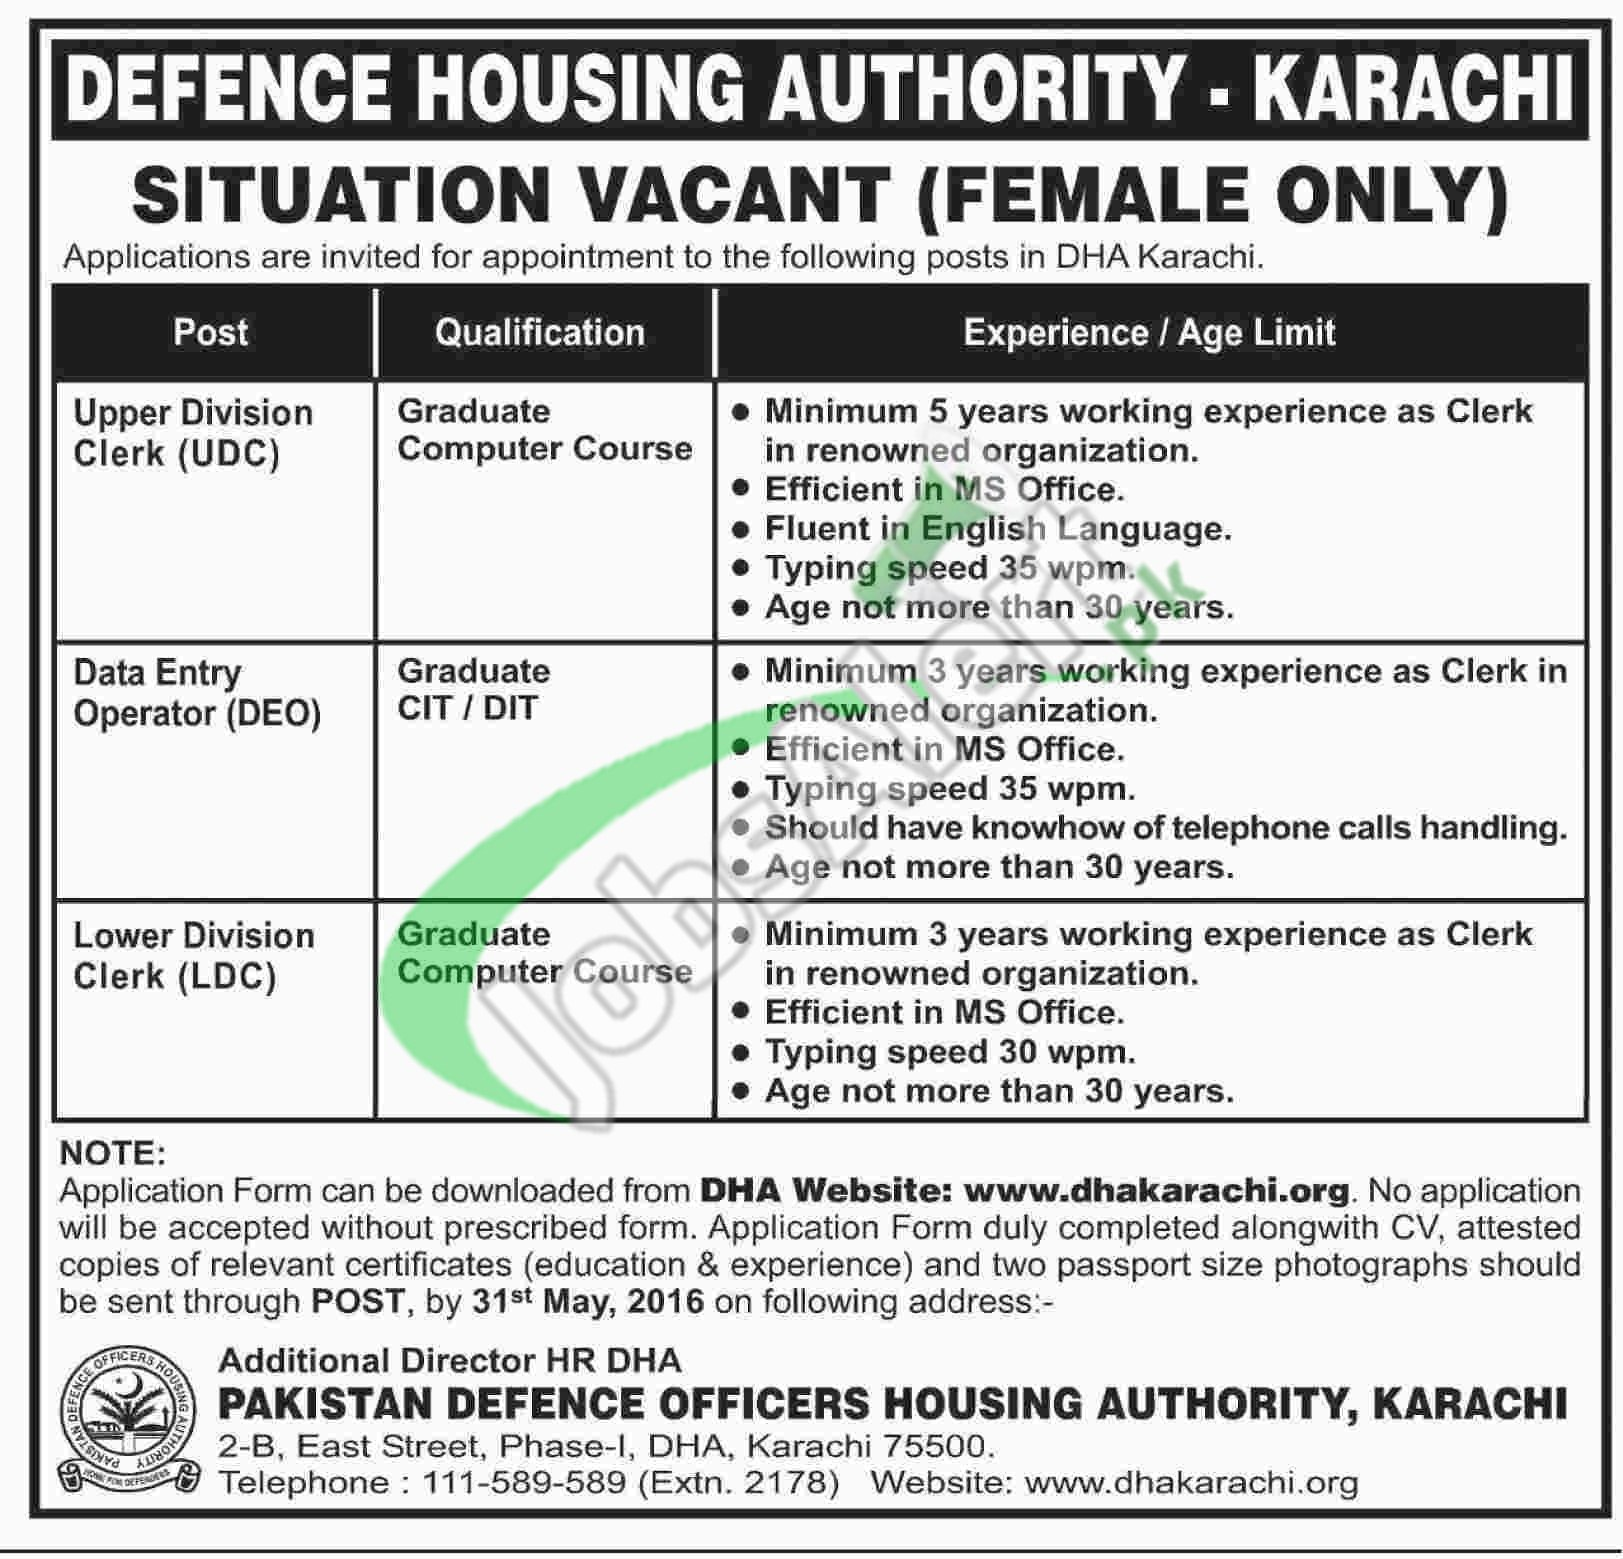 dhakarachi org jobs application form 2016 defence housing click here